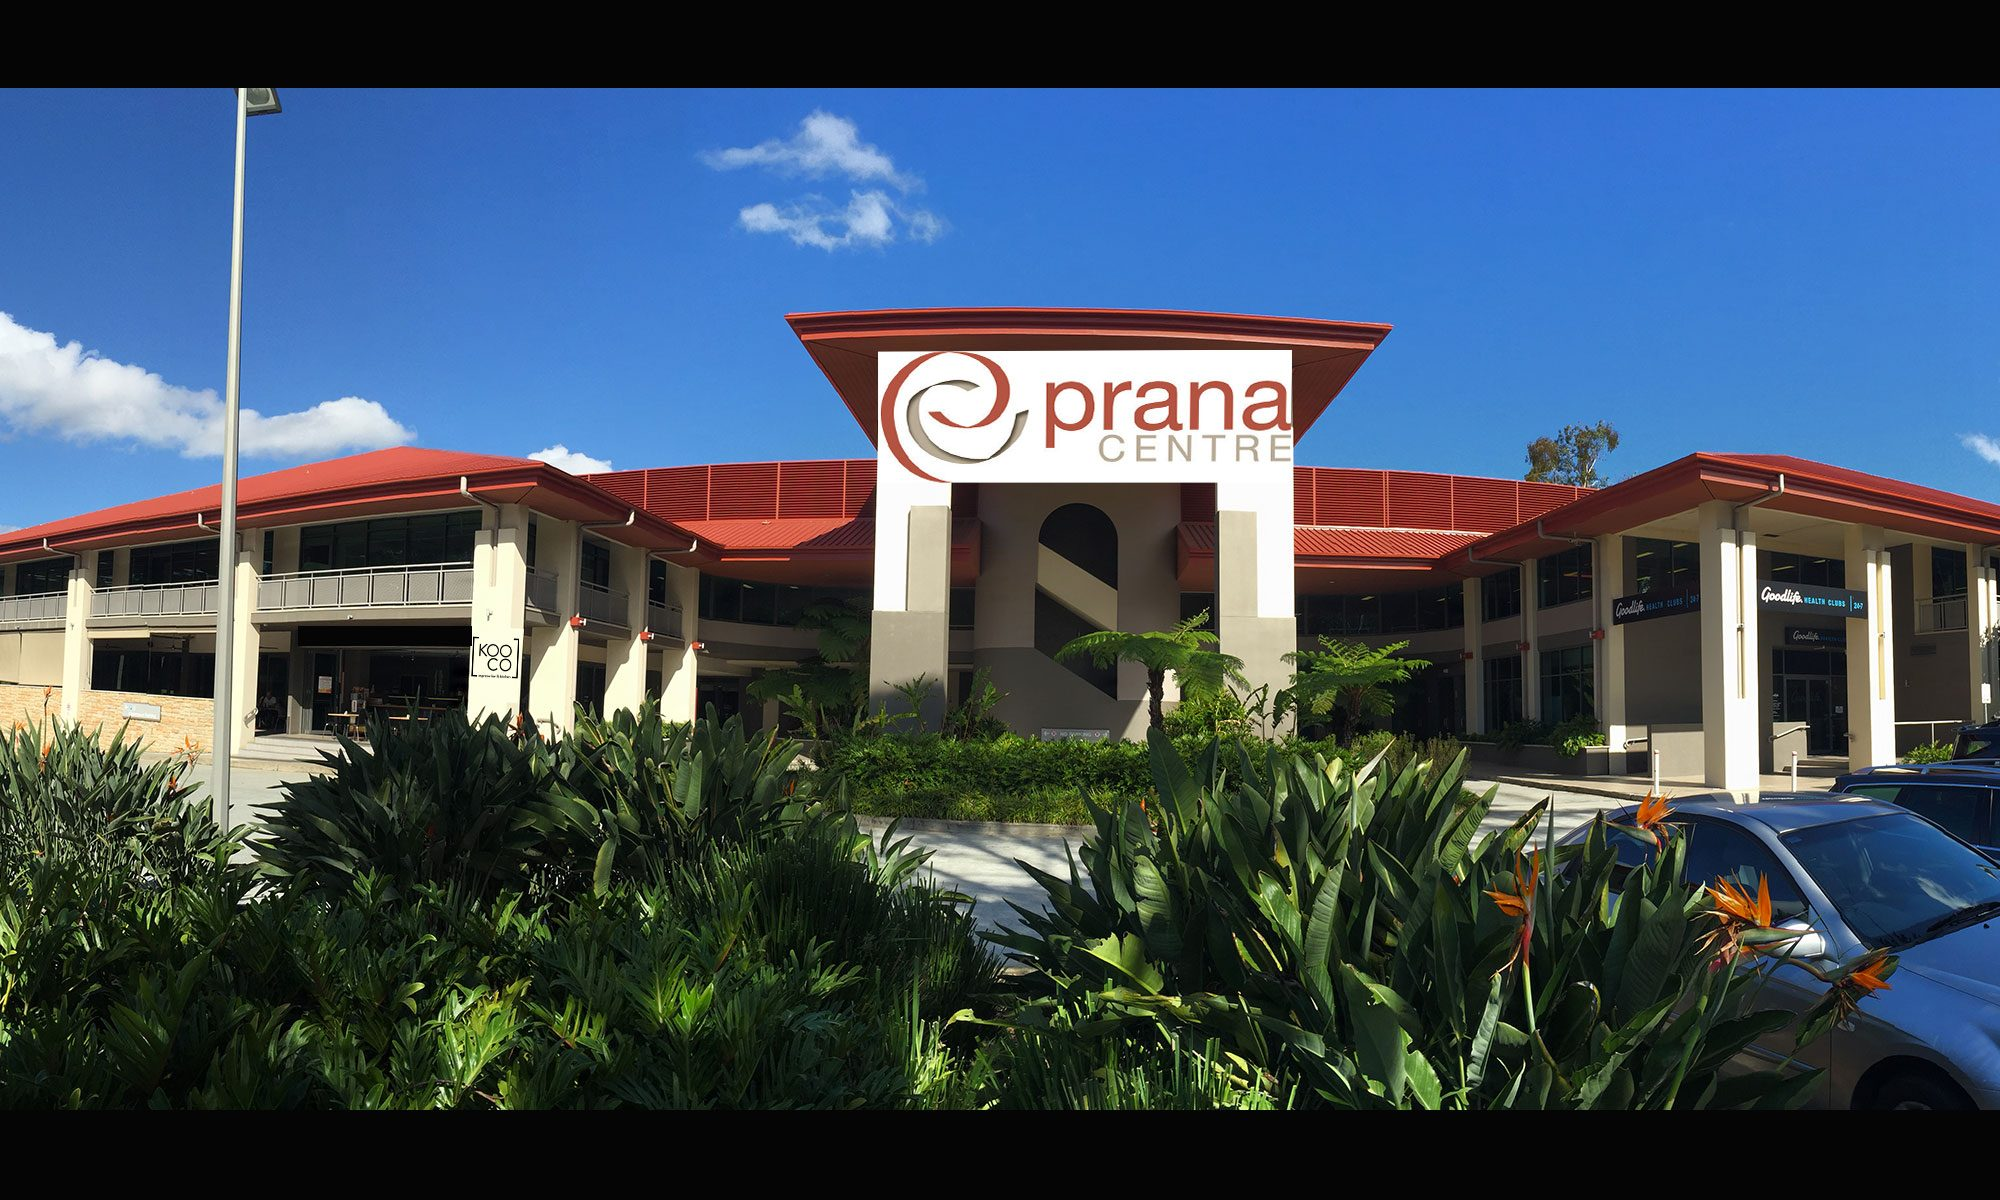 The Prana Centre